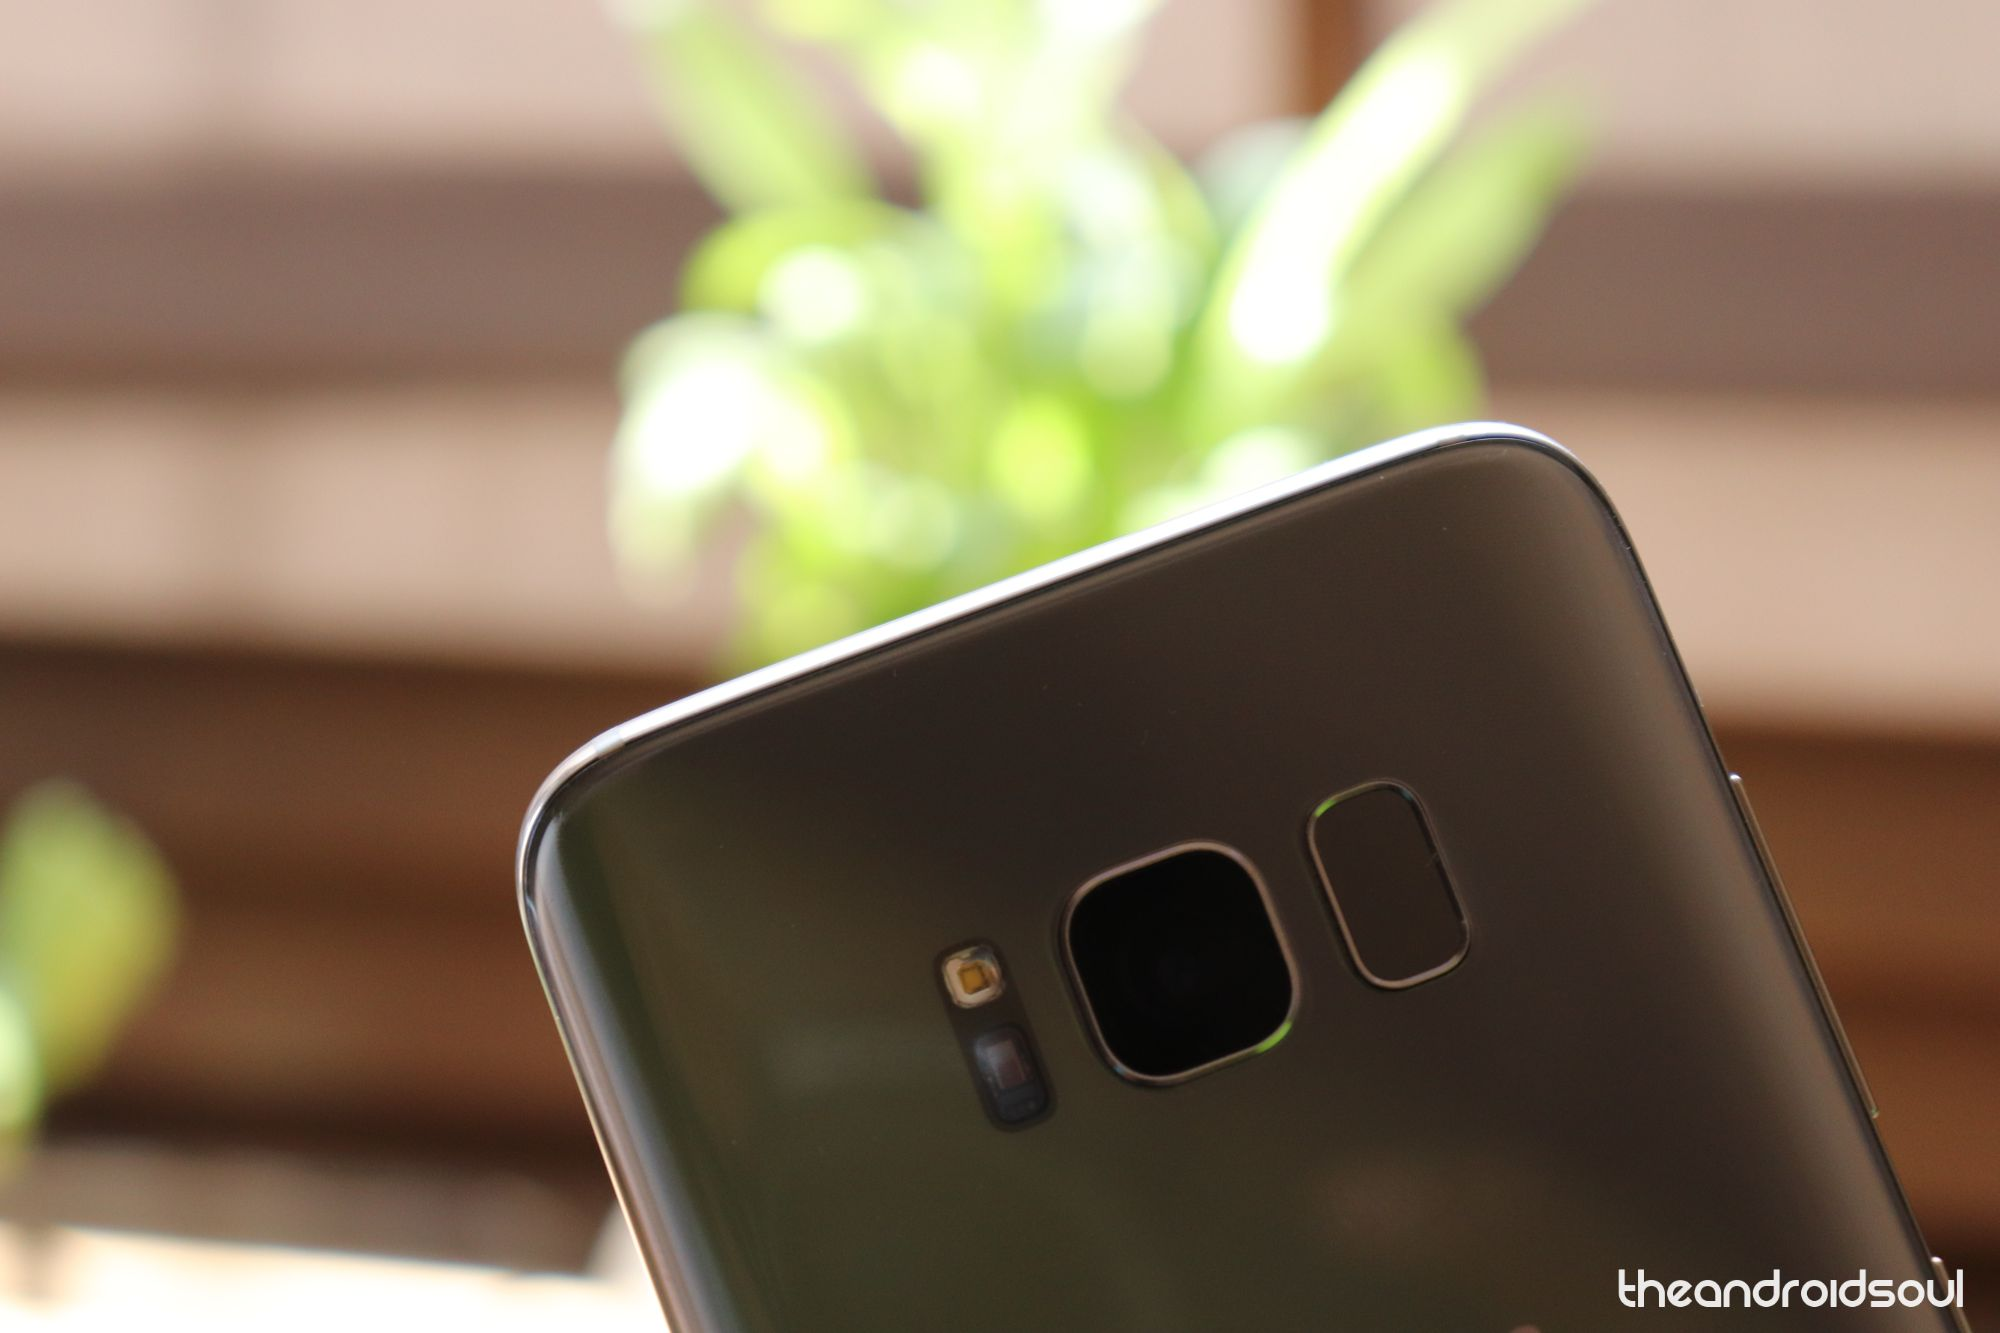 How to fix the screen dimming problem on the Galaxy S8